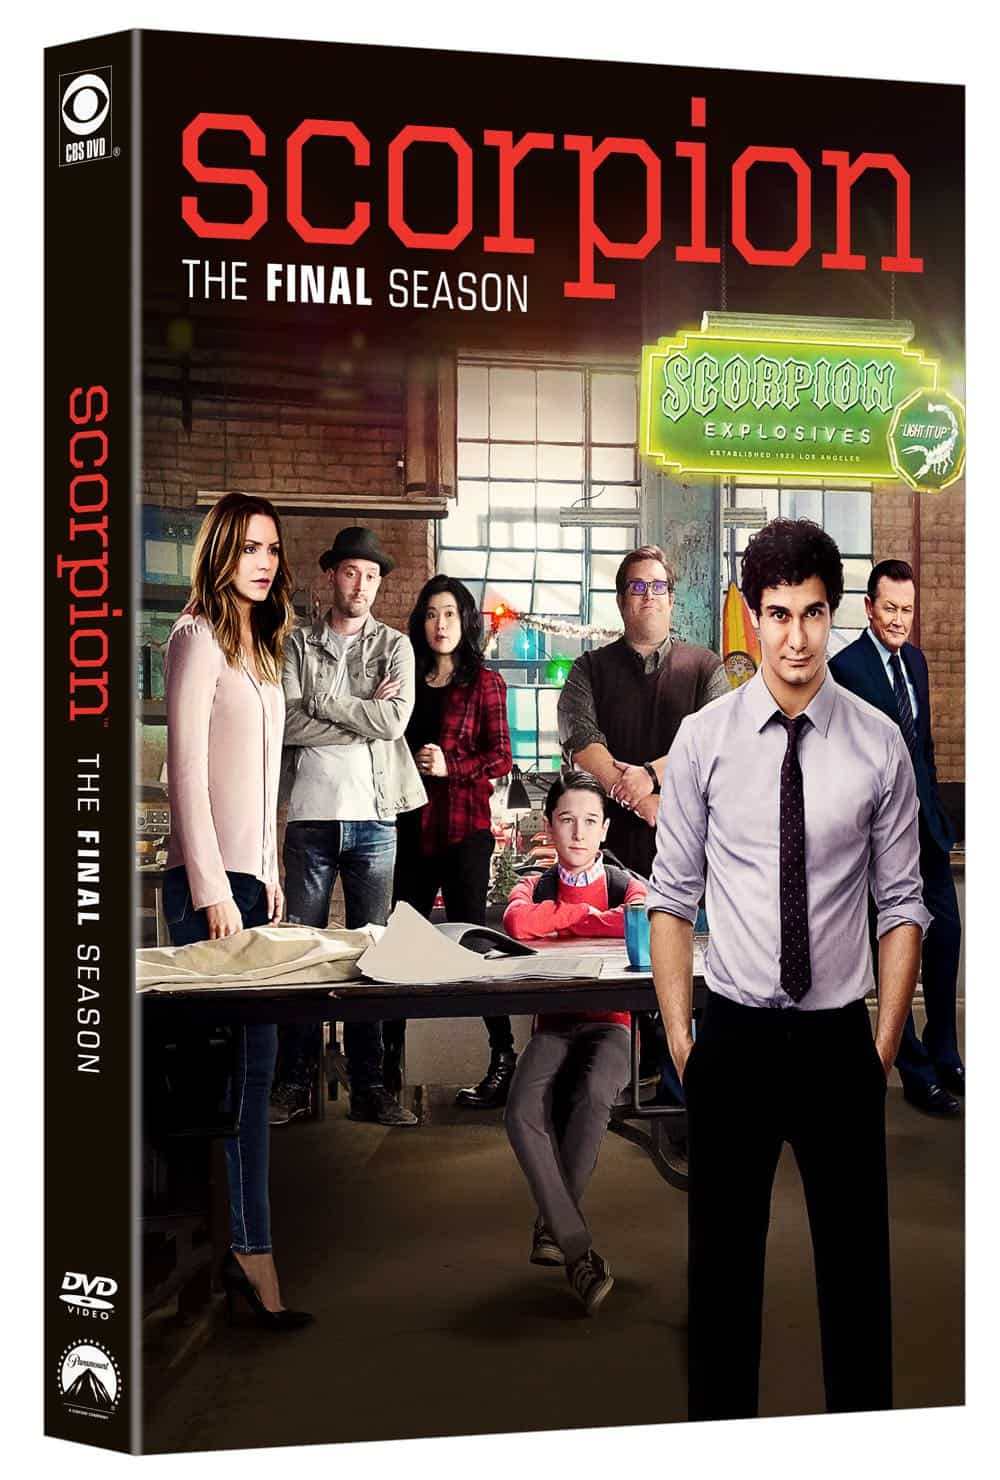 Scorpion Season 4 DVD 1